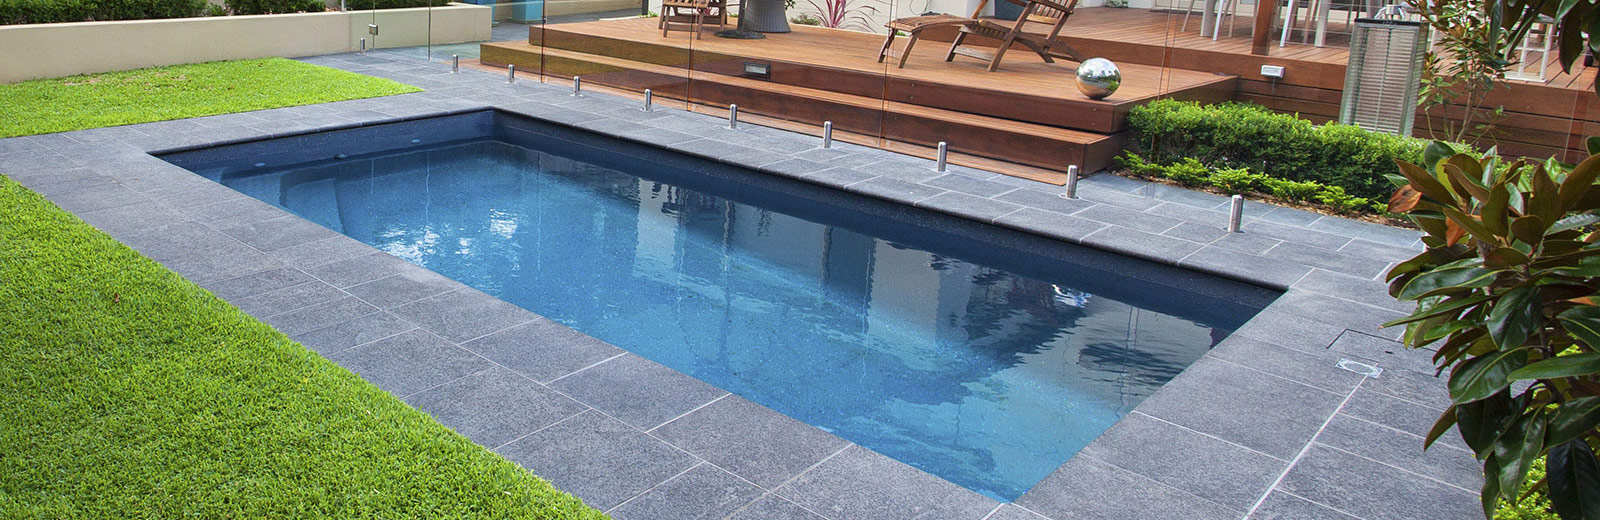 Fibreglass swimming pools nz aqua technics auckland for Above ground swimming pools nz